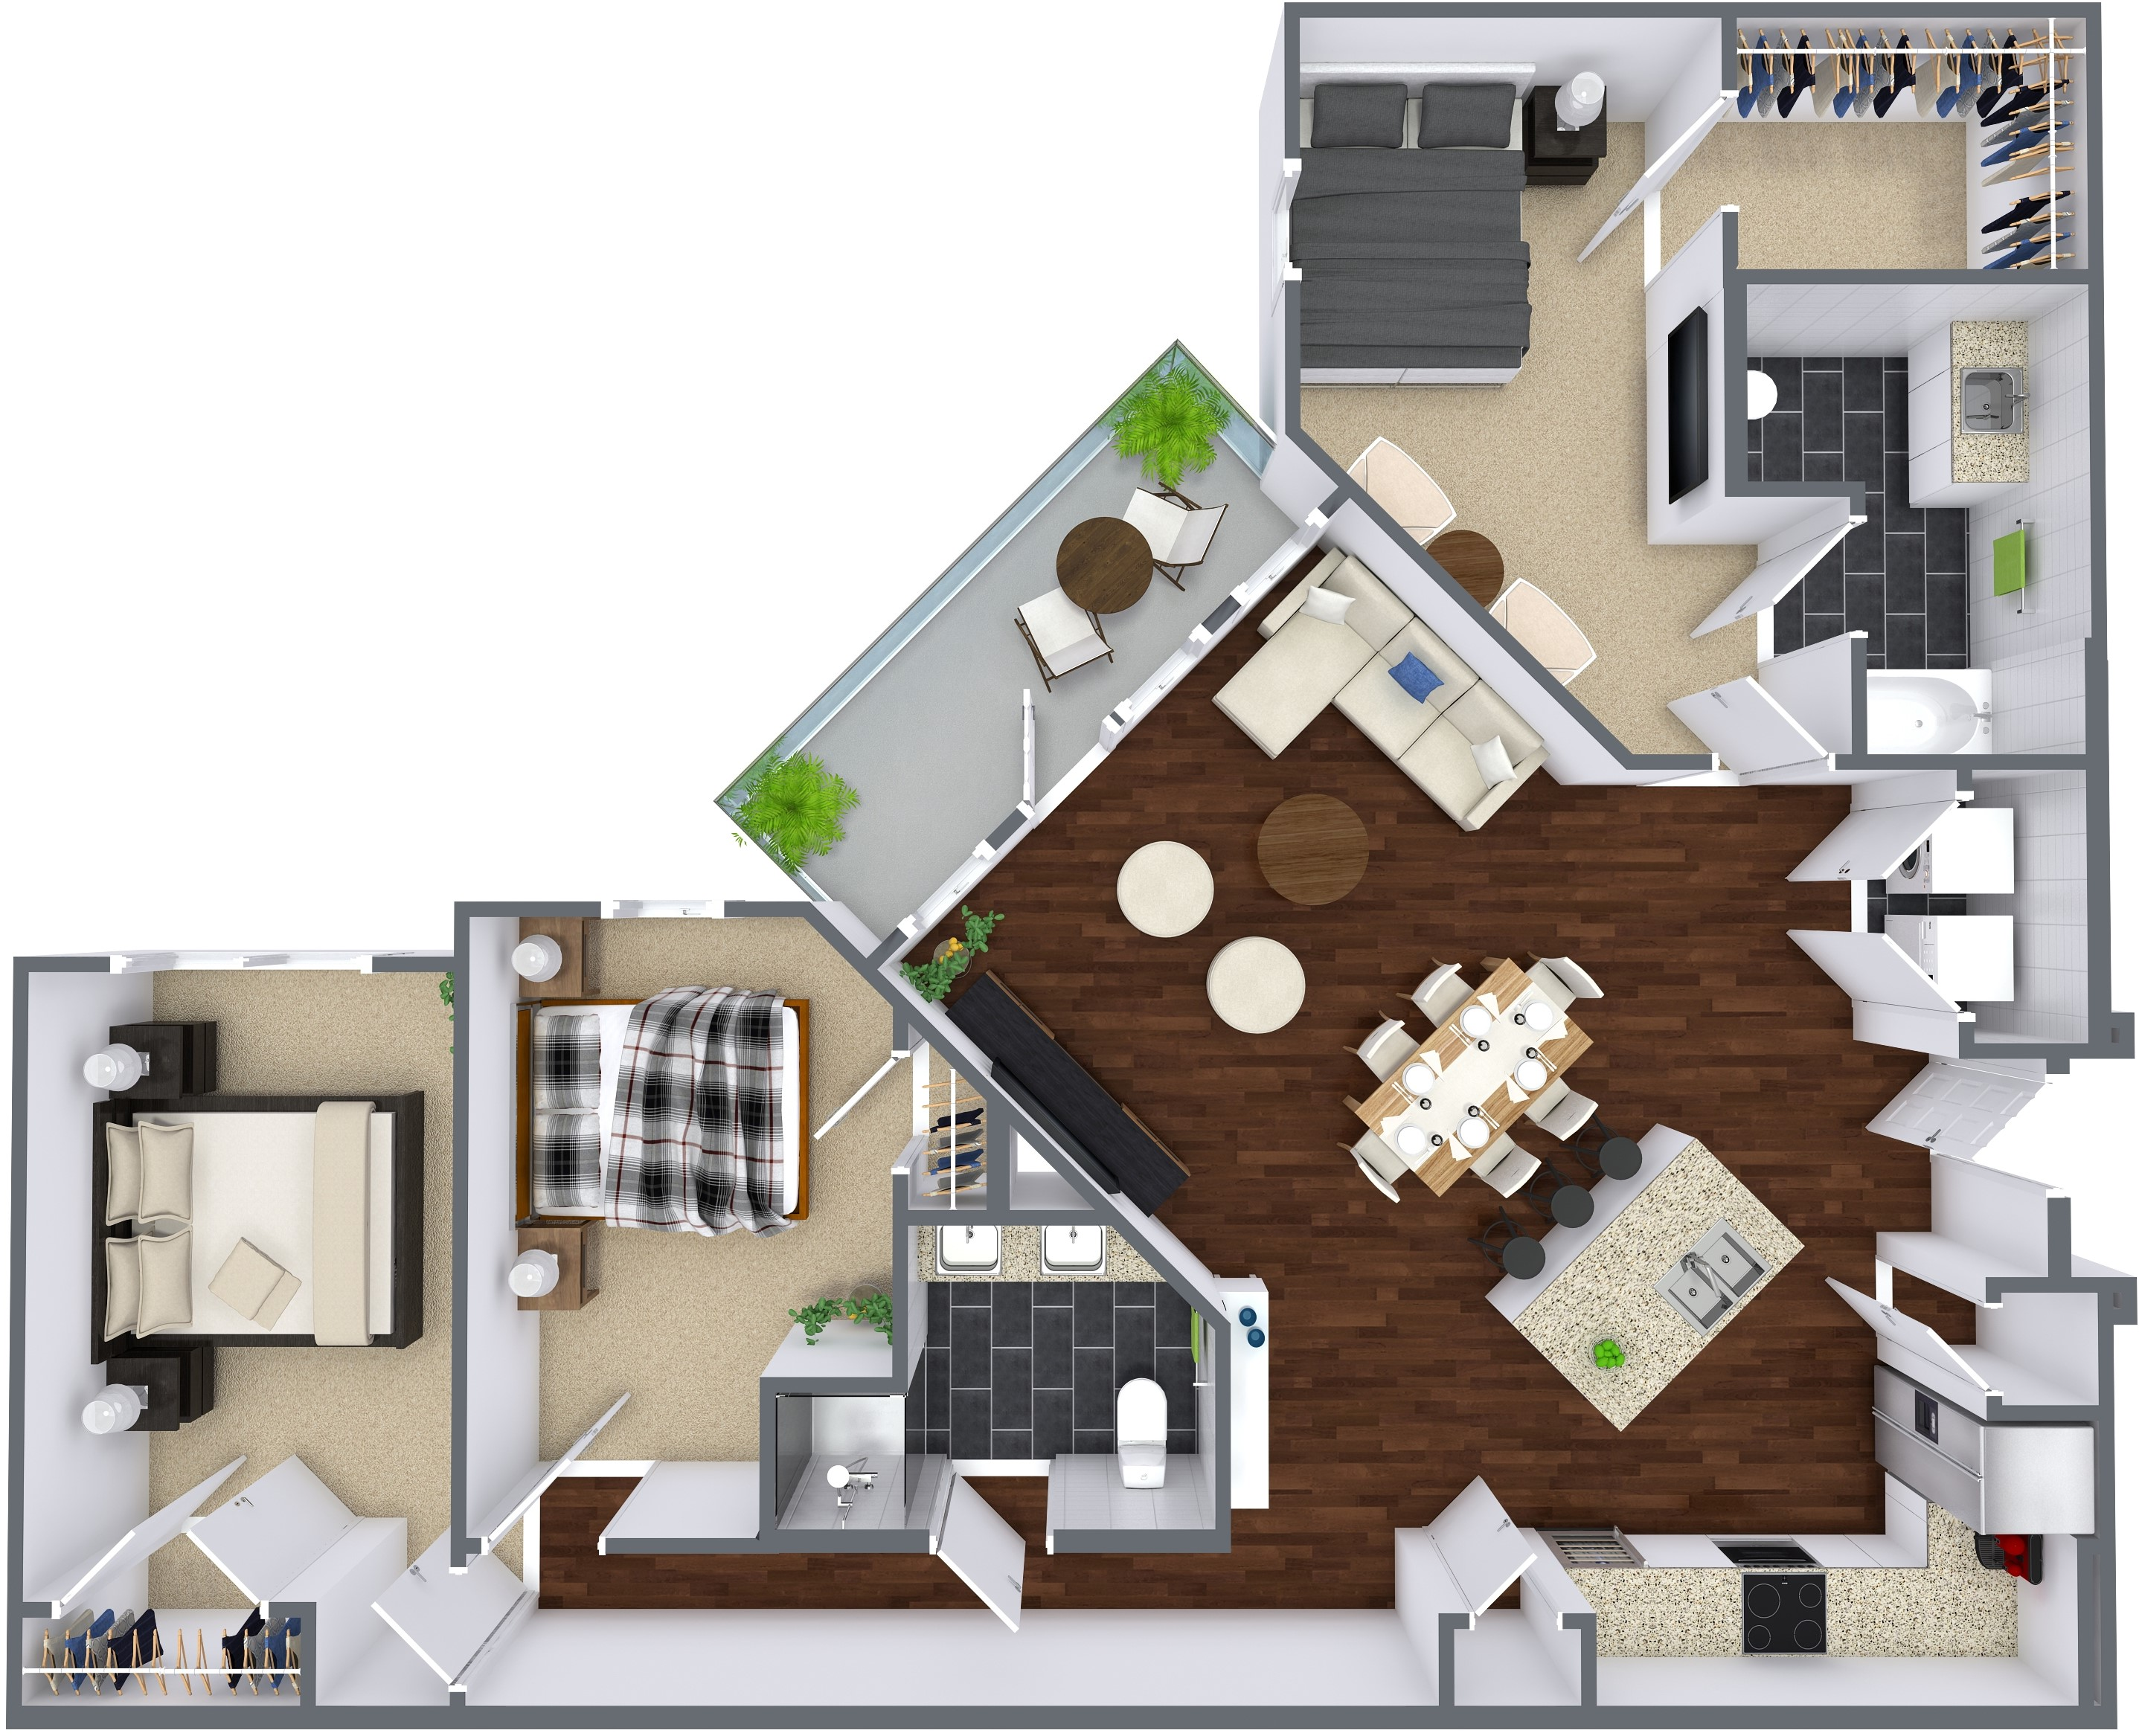 Oxford at Lake View - Floorplan - C1